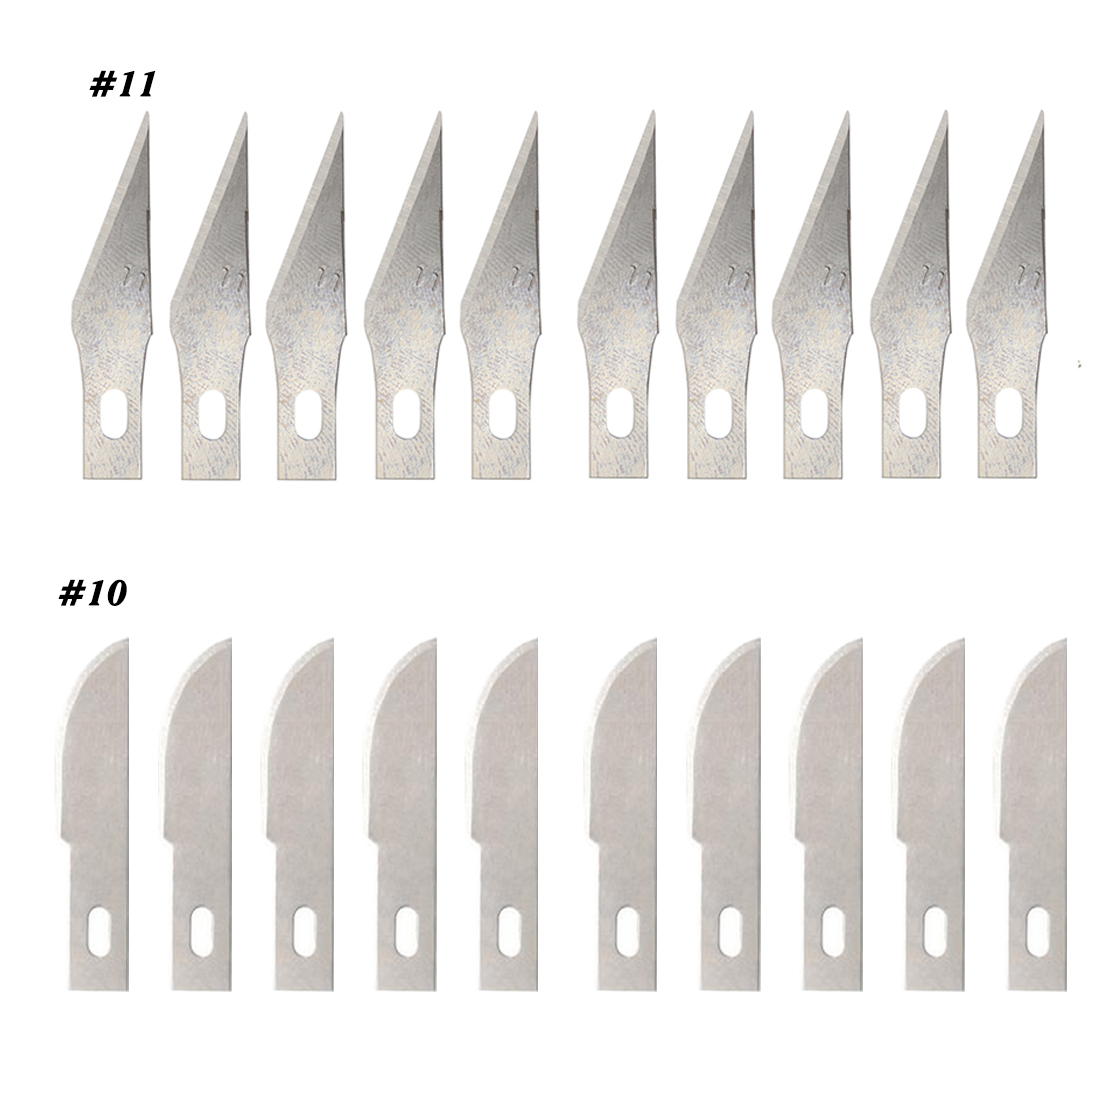 Hand Tools 10 Pcs/set Blades 11#/10# For Wood Carving Tools Engraving Craft Sculpture Knife Scalpel Cutting Tool PCB Repair Tool